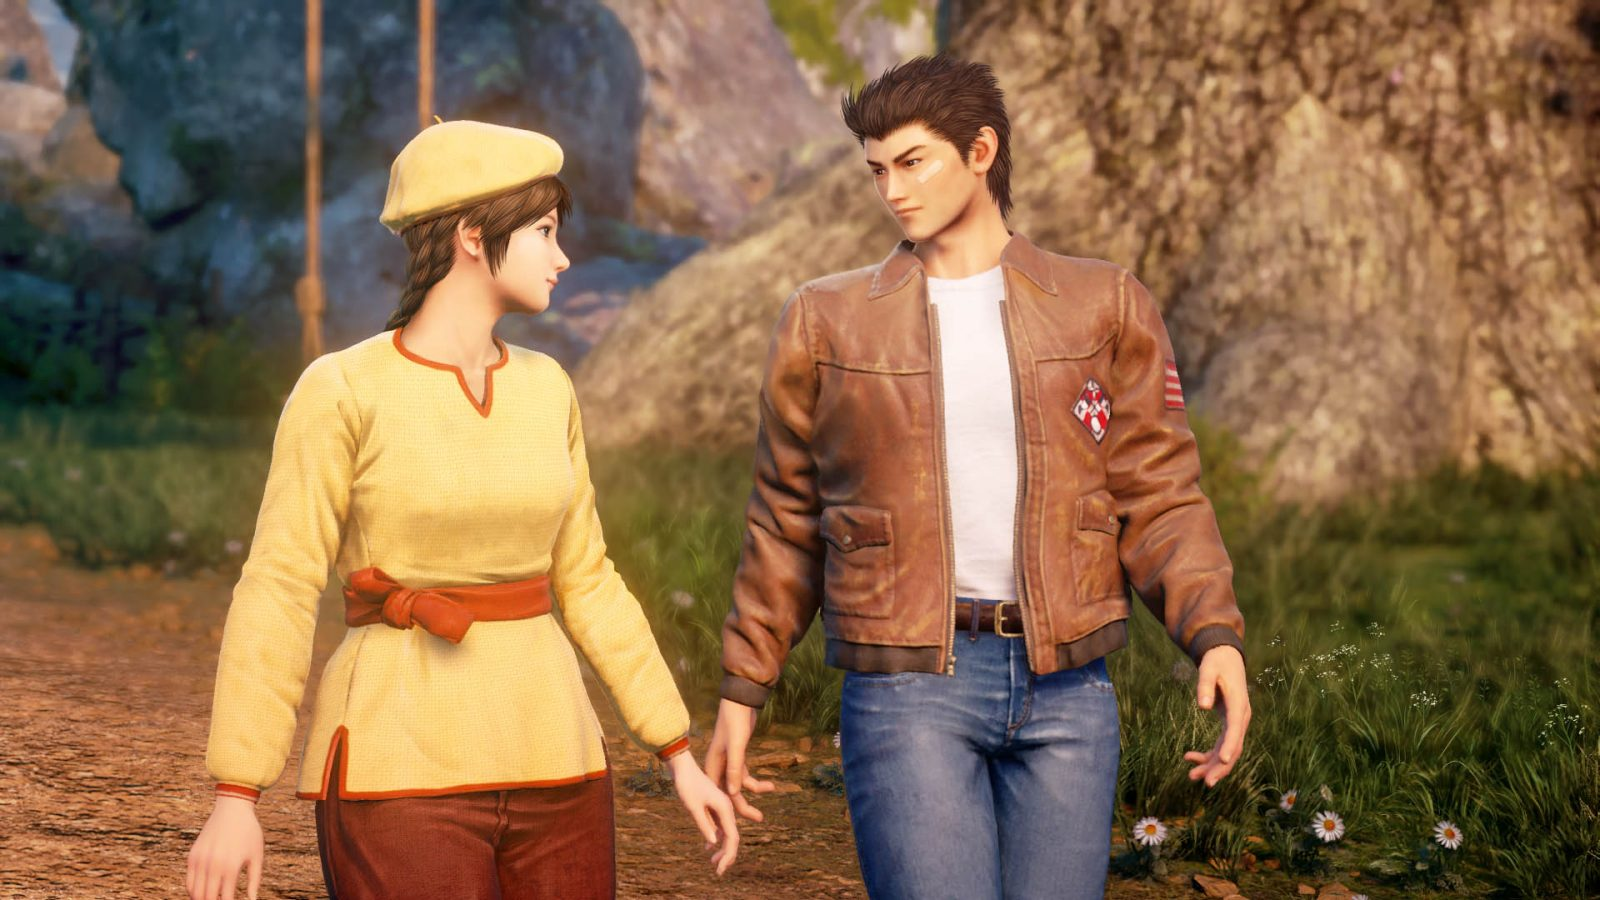 When is the Shenmue 3 review embargo?